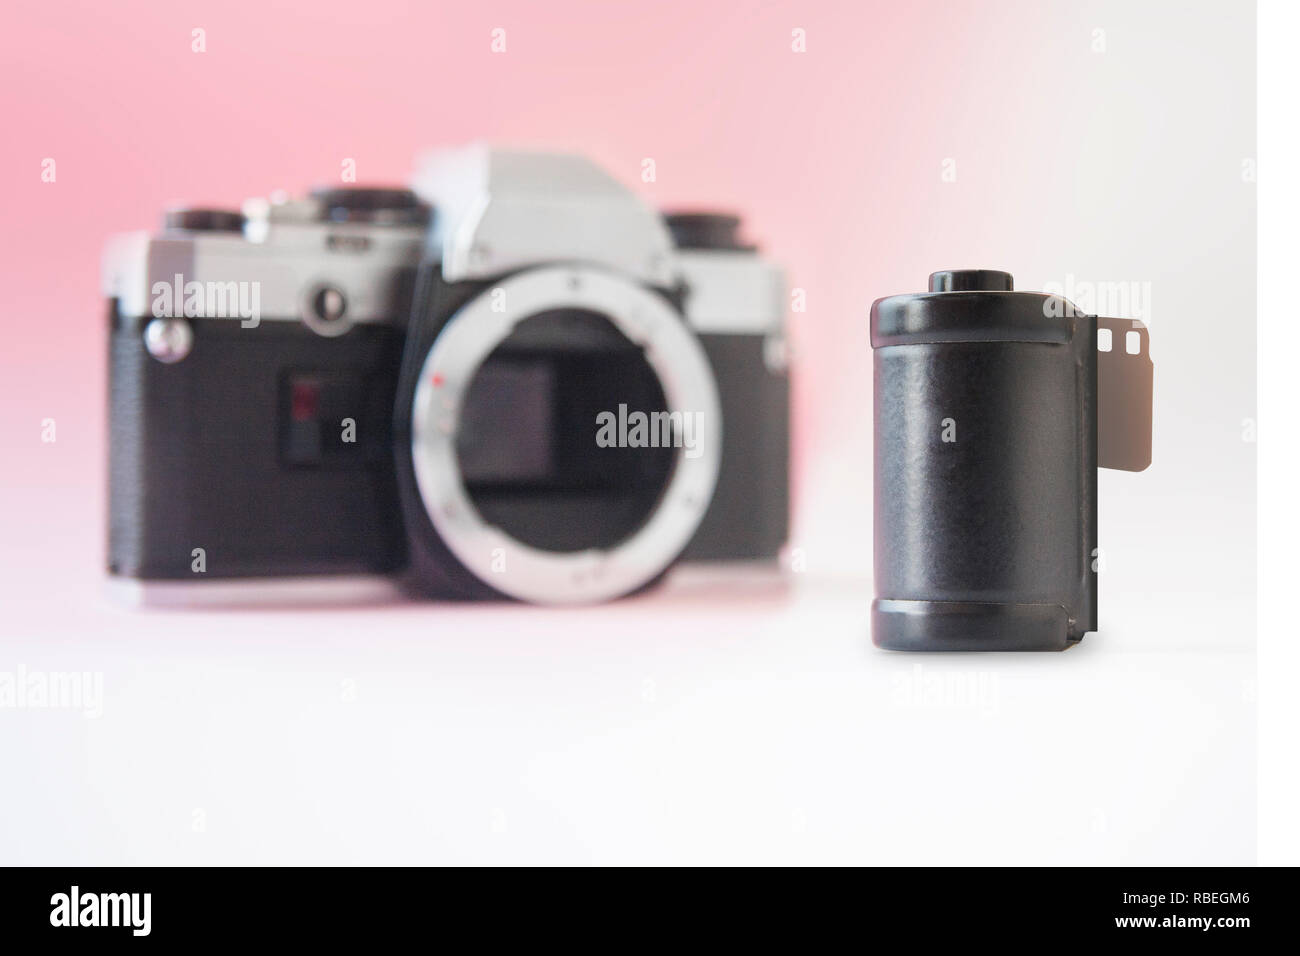 35 mm Film Canister on Blurry SLR Camera Back - Stock Image